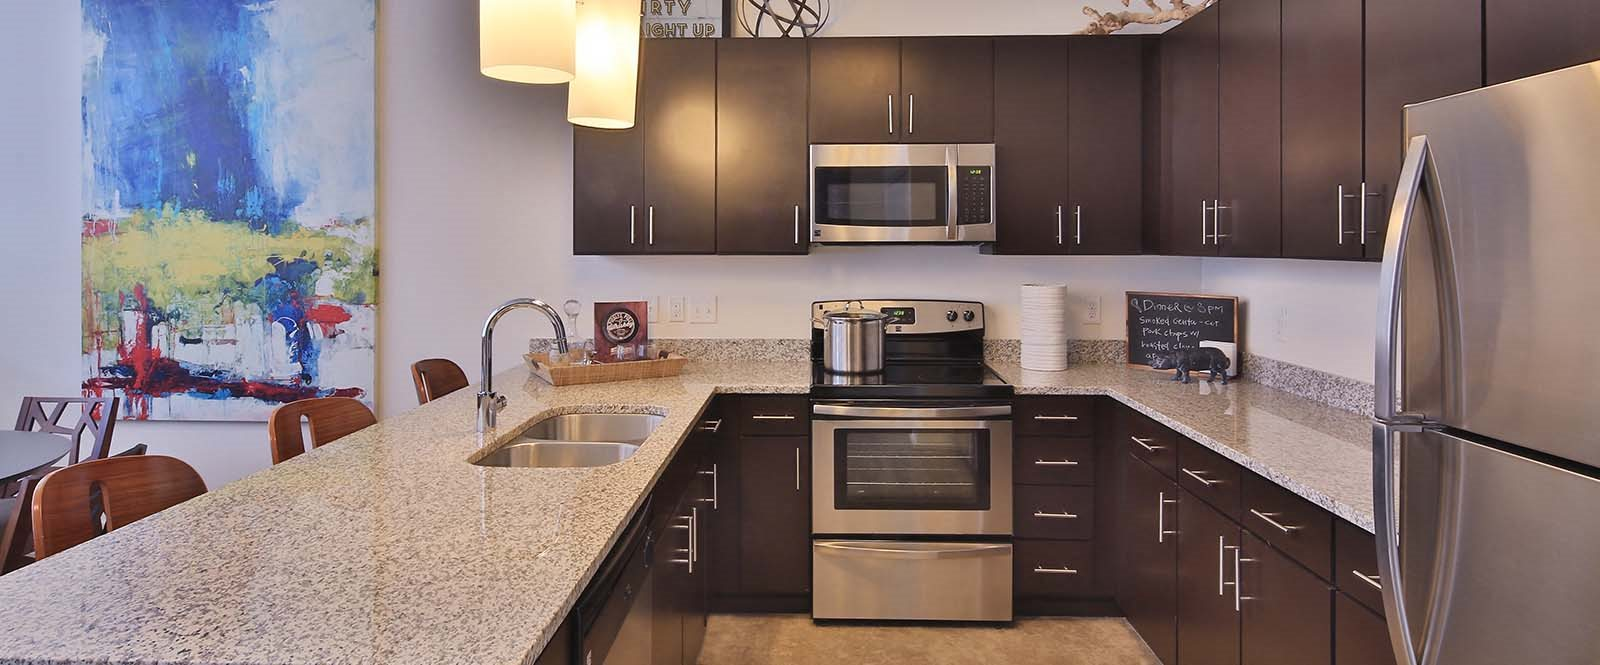 The Finest Luxury Apartments In Winston Salem Nc For Rent